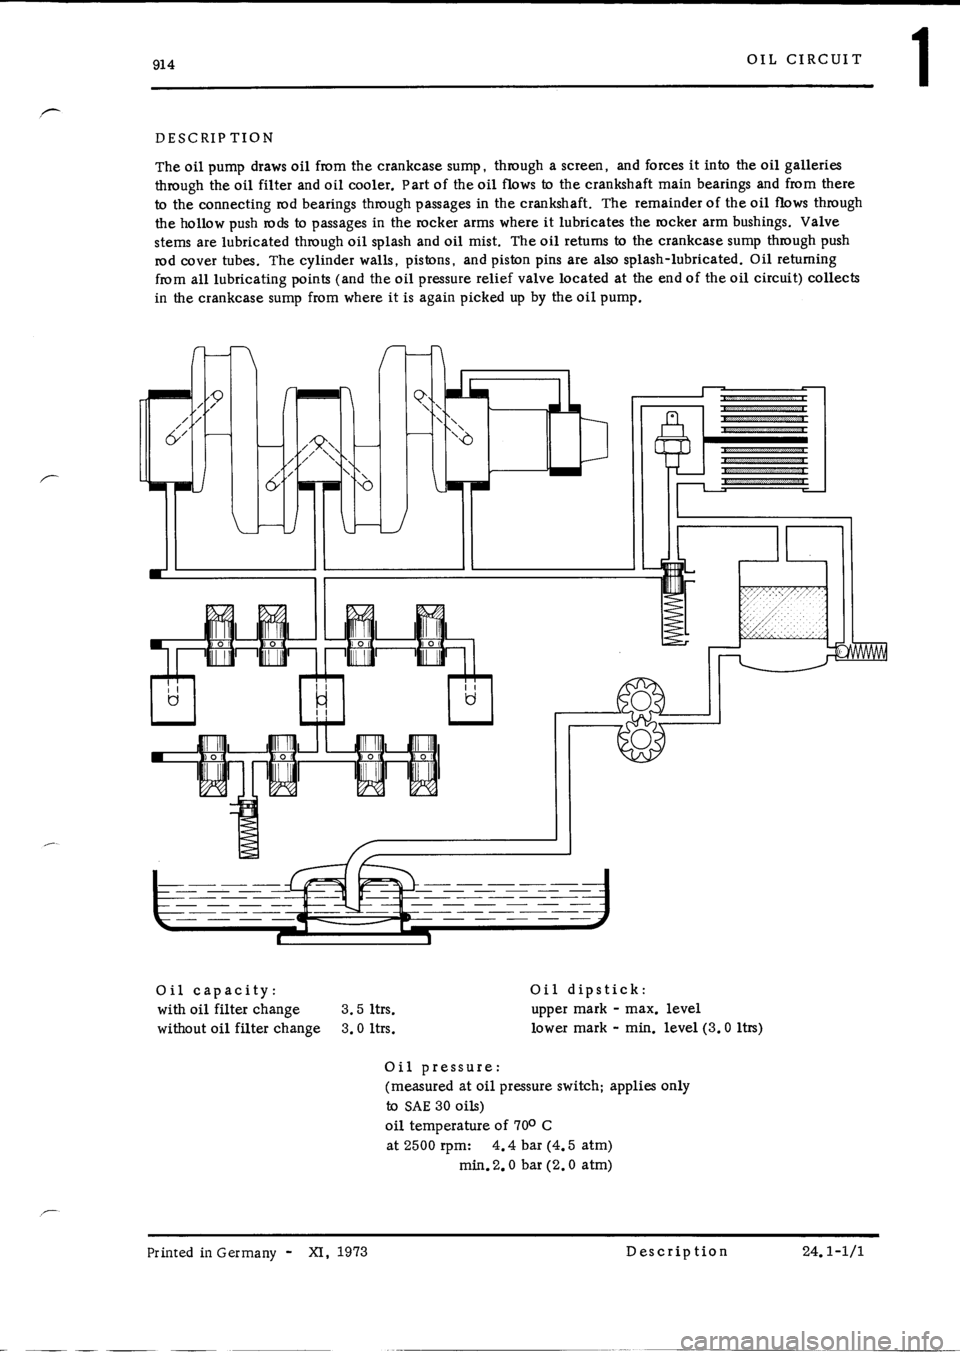 PORSCHE 914 1973 1.G Engine 4 Workshop Manual, Page 6